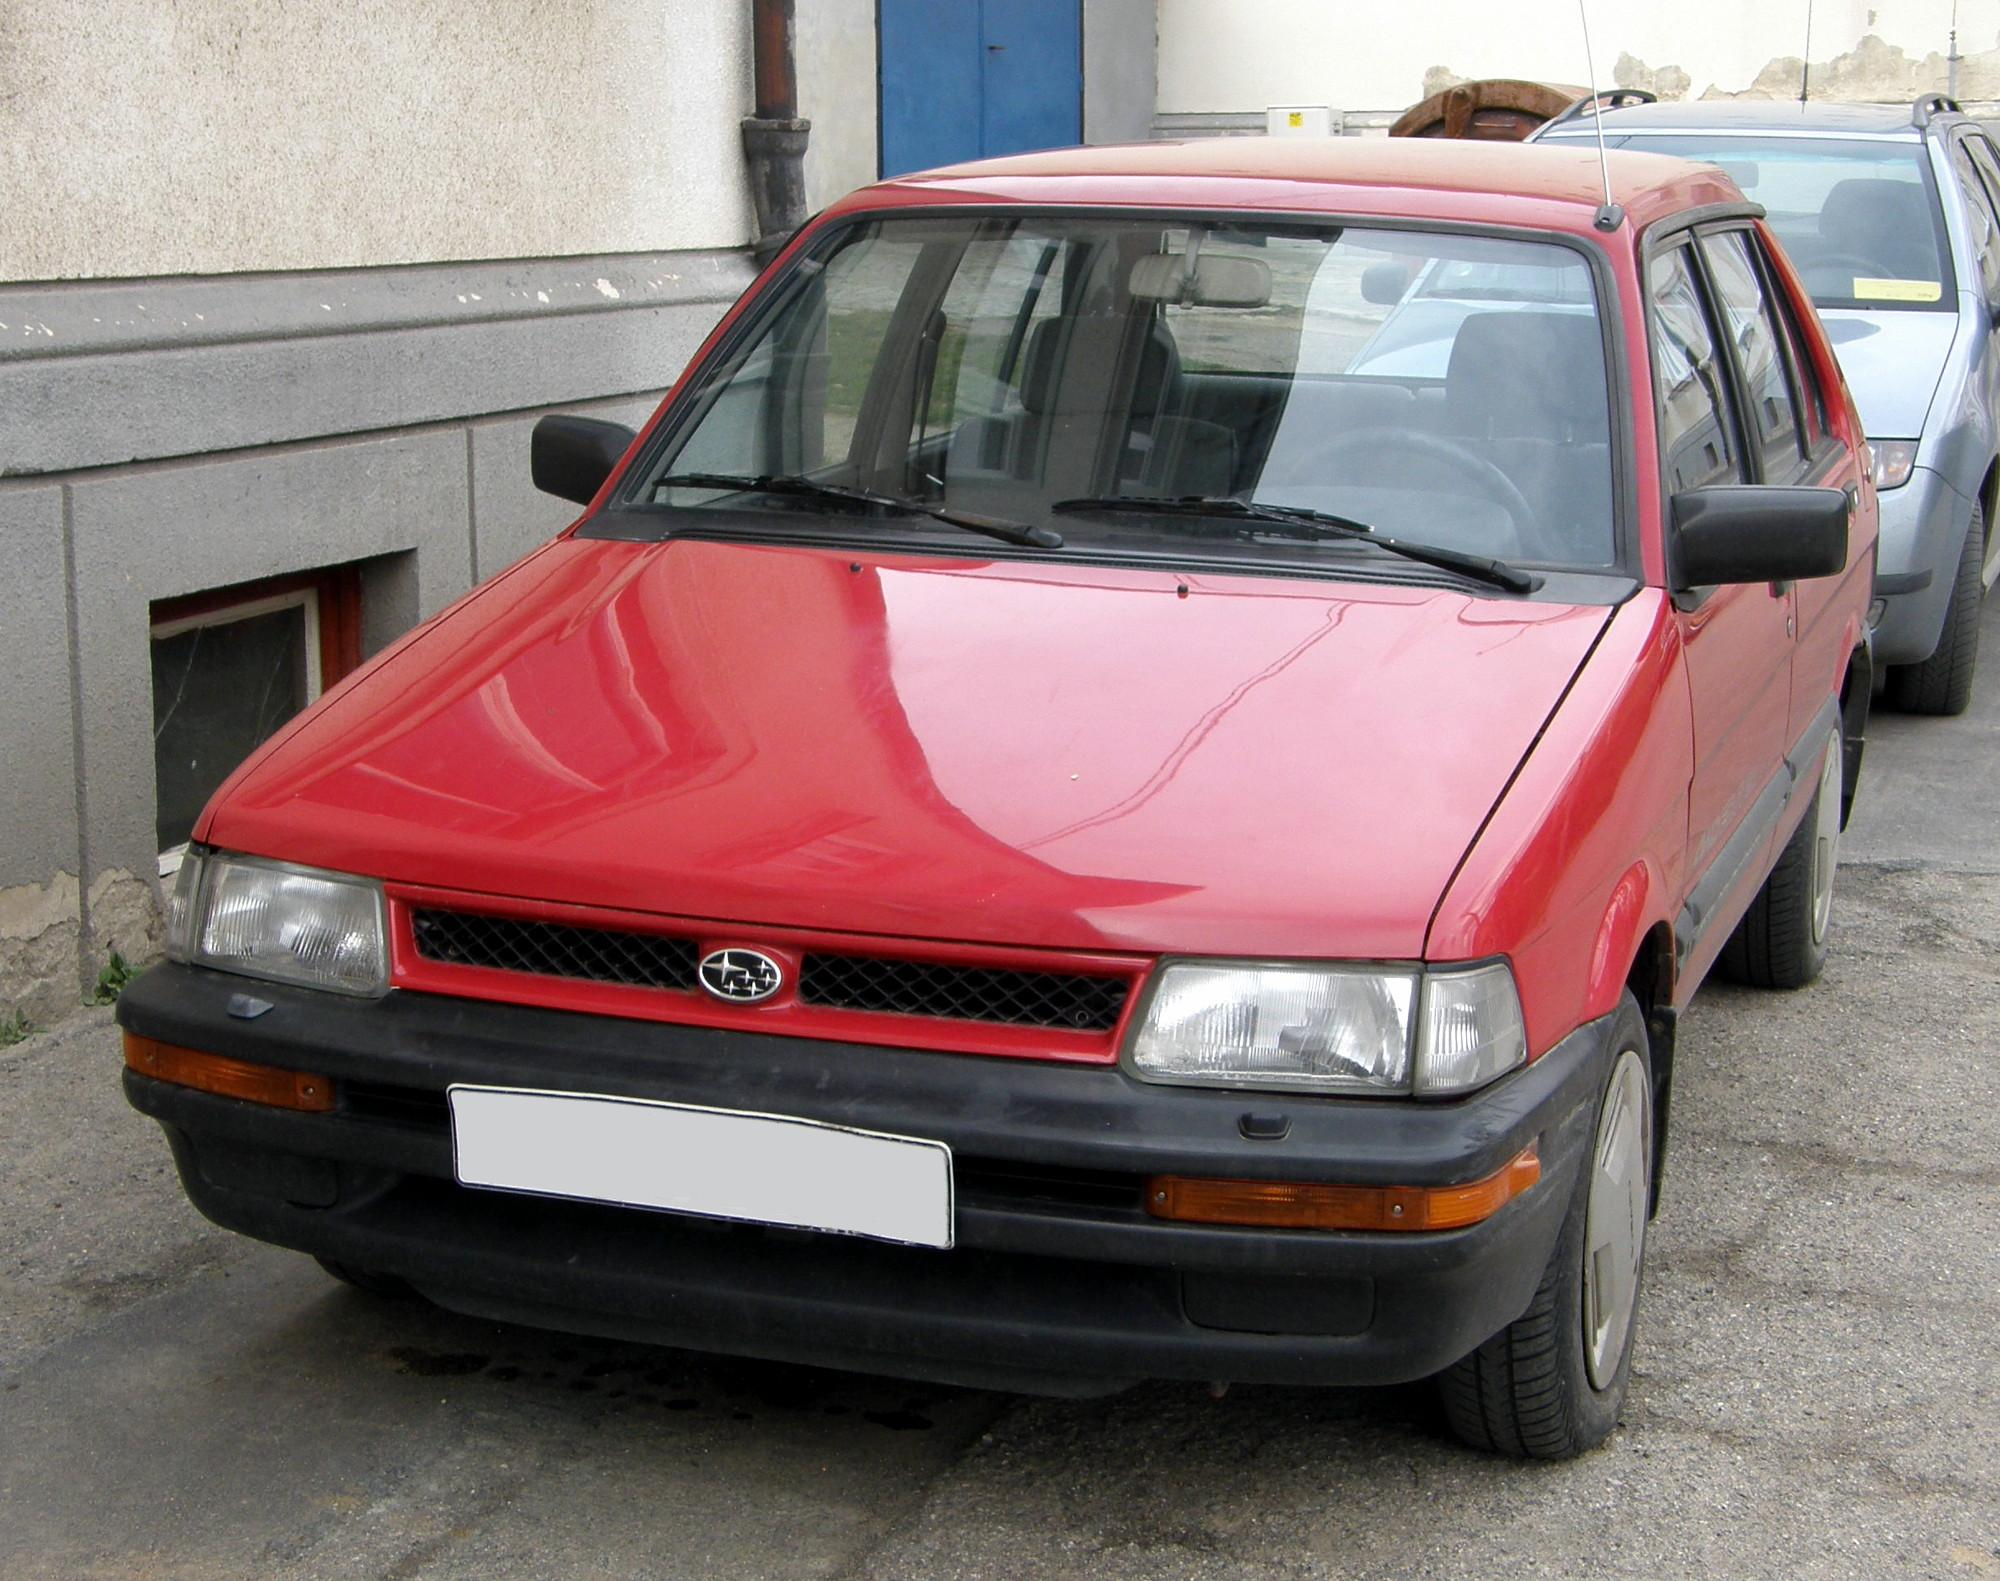 Subaru Justy I 1984 - 1987 Hatchback 3 door #3